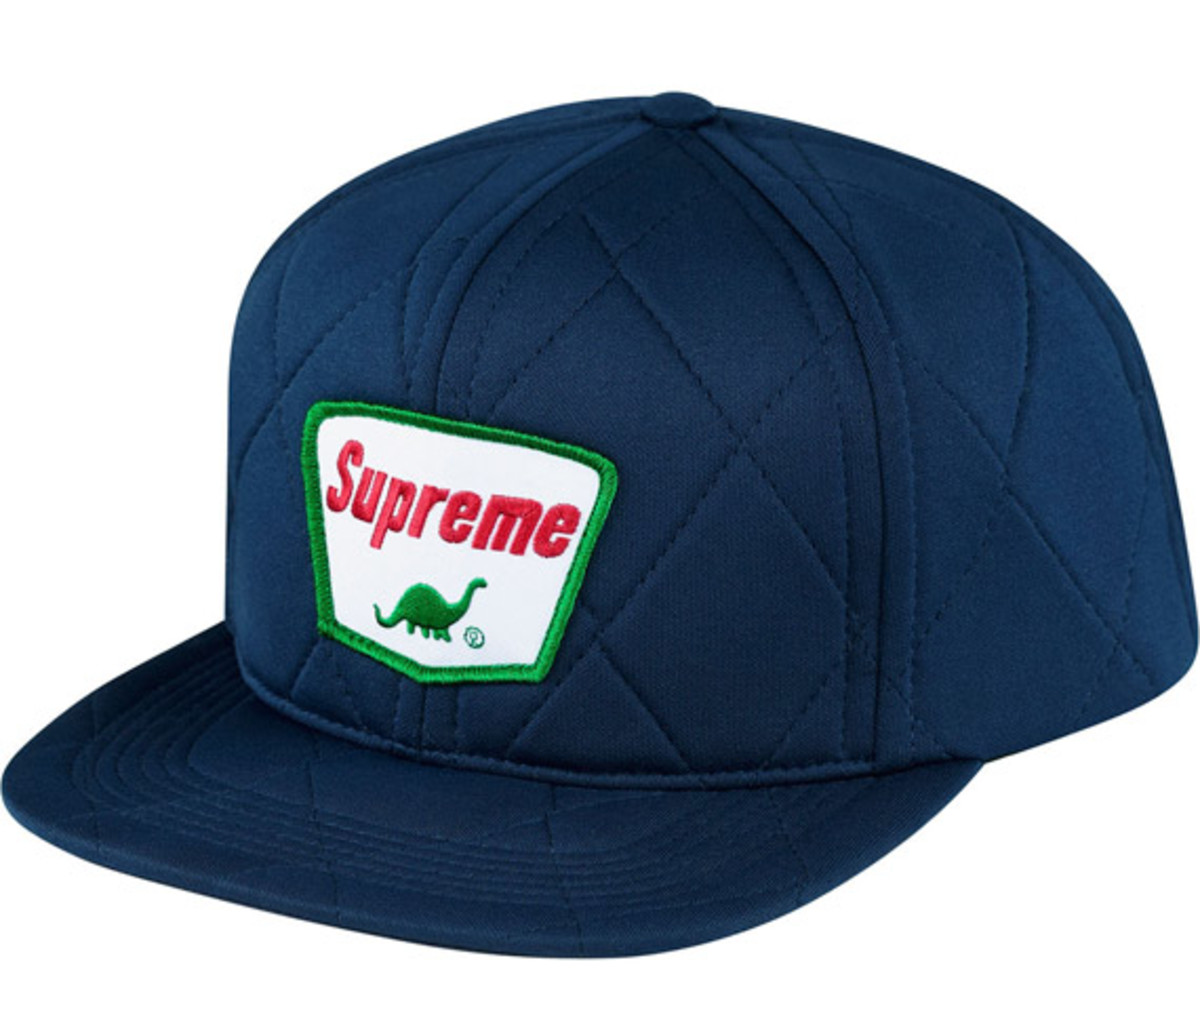 supreme-quilted-foam-6-panel-snapback-caps-05